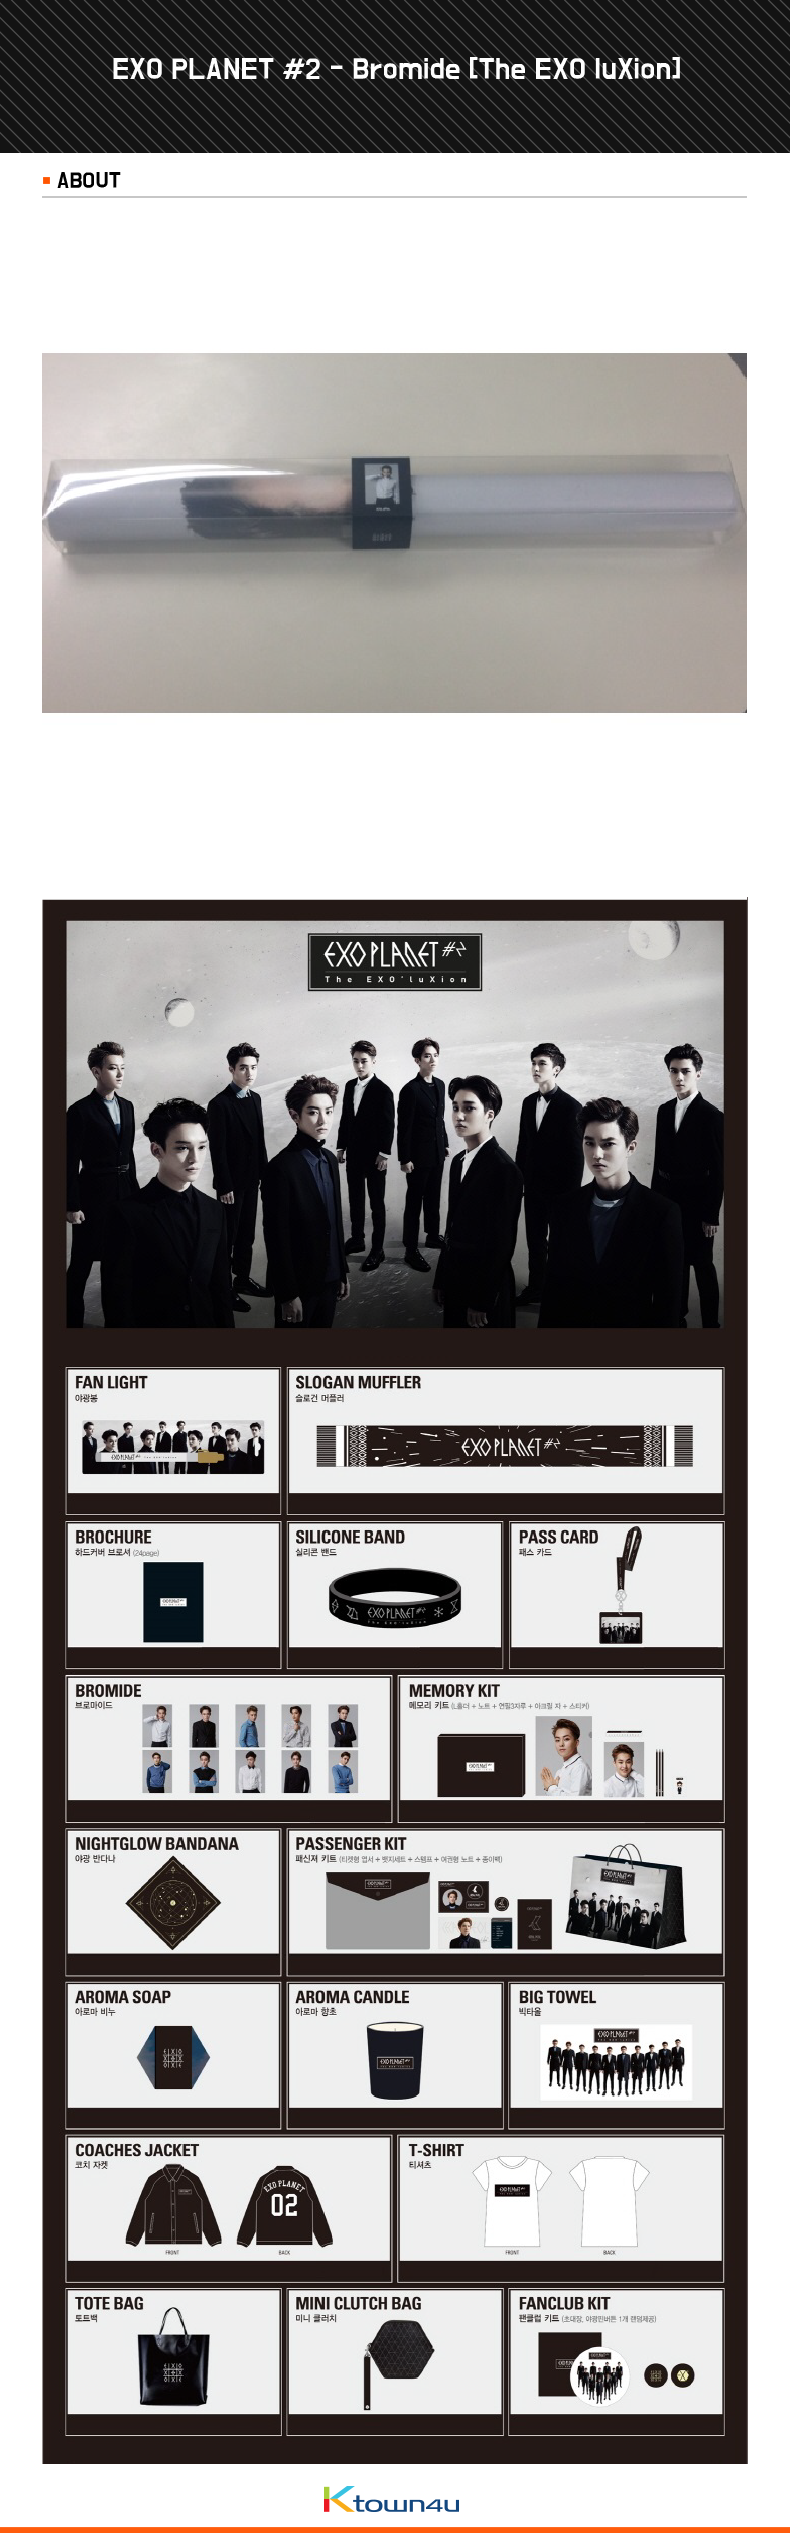 EXO - Bromide [The EXO luXion]